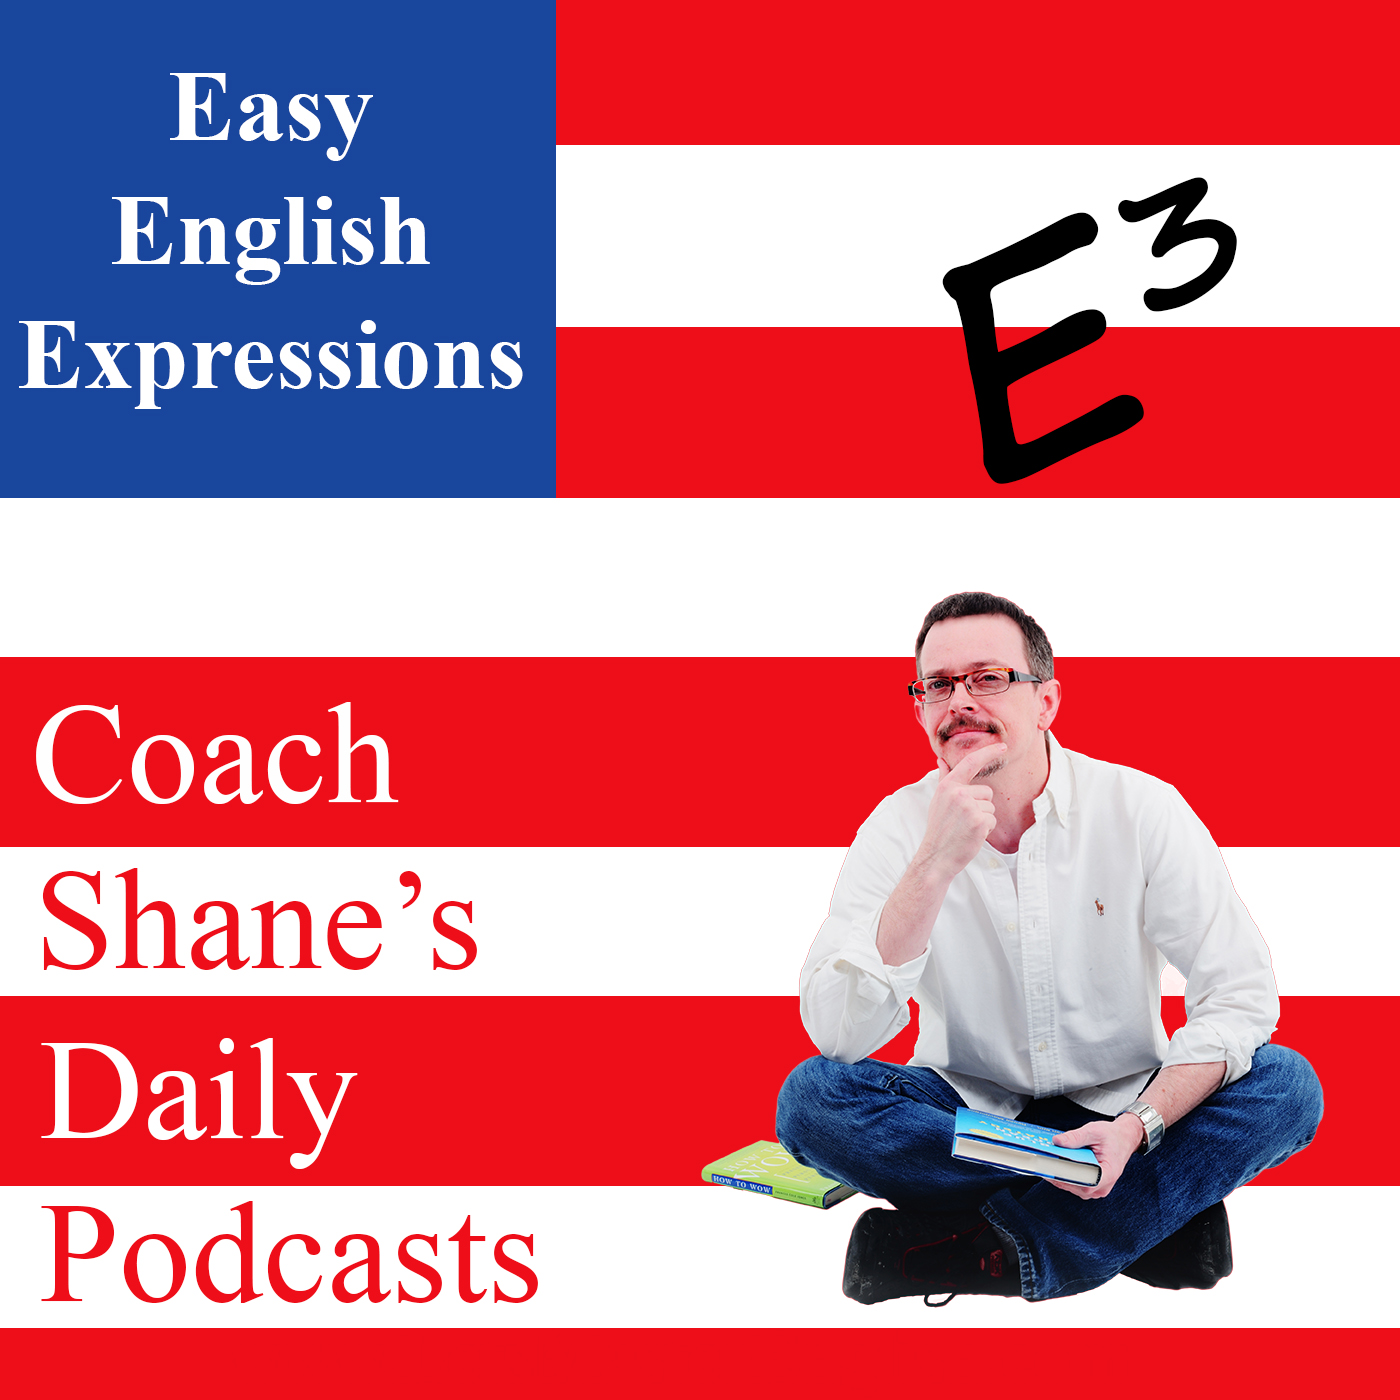 56 Daily Easy English Expression PODCAST—a pushover